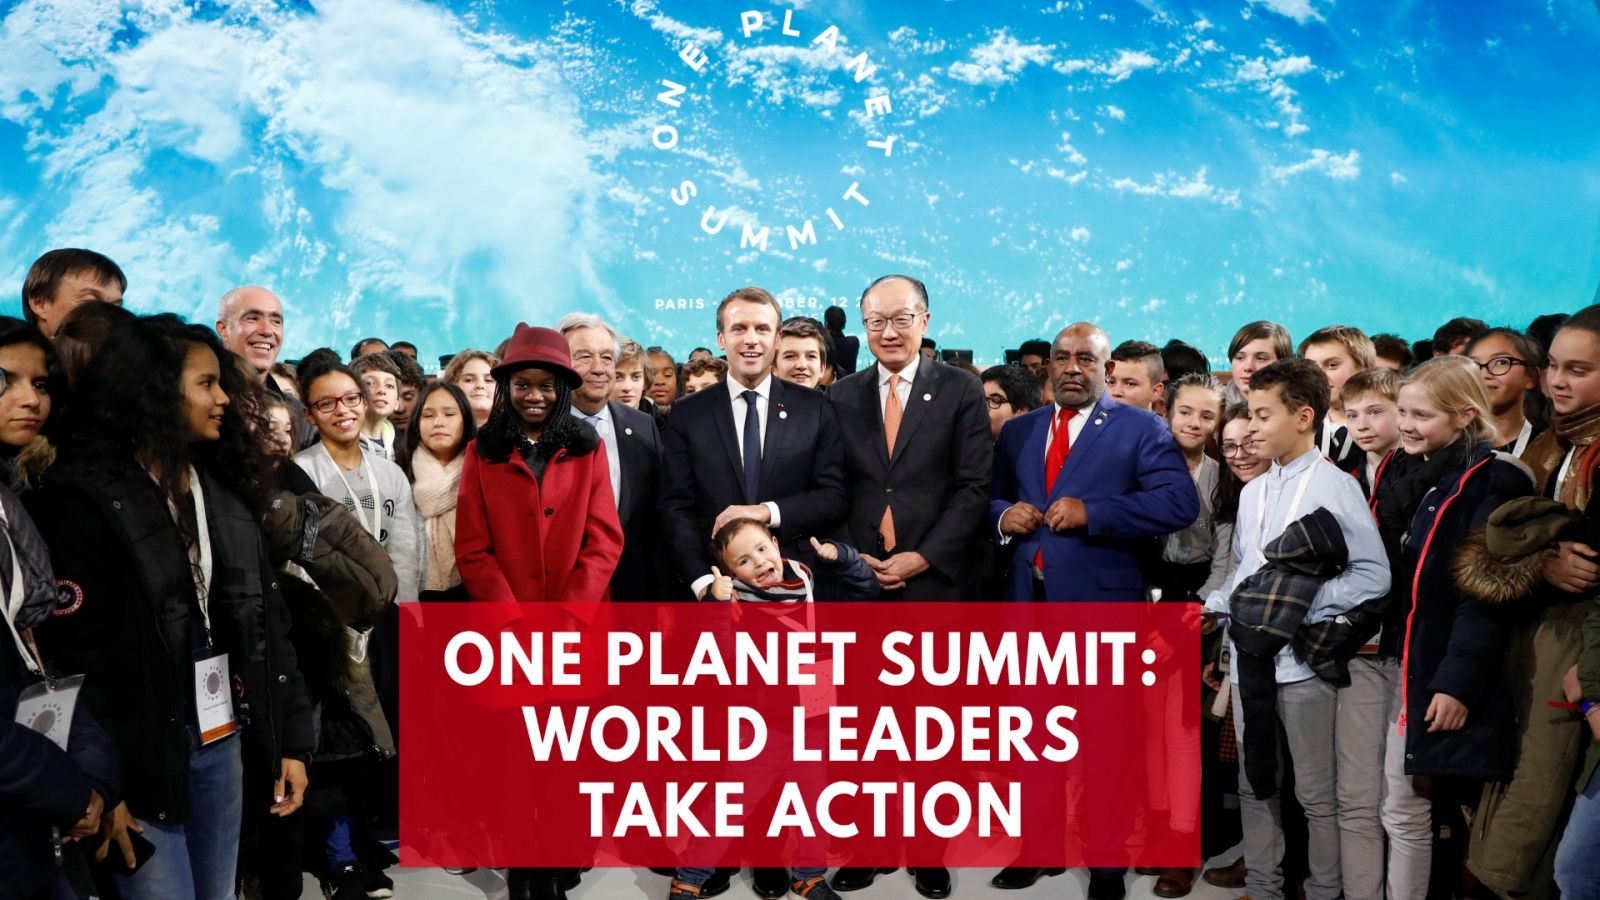 world-leaders-gather-in-paris-for-climate-summit-except-trump